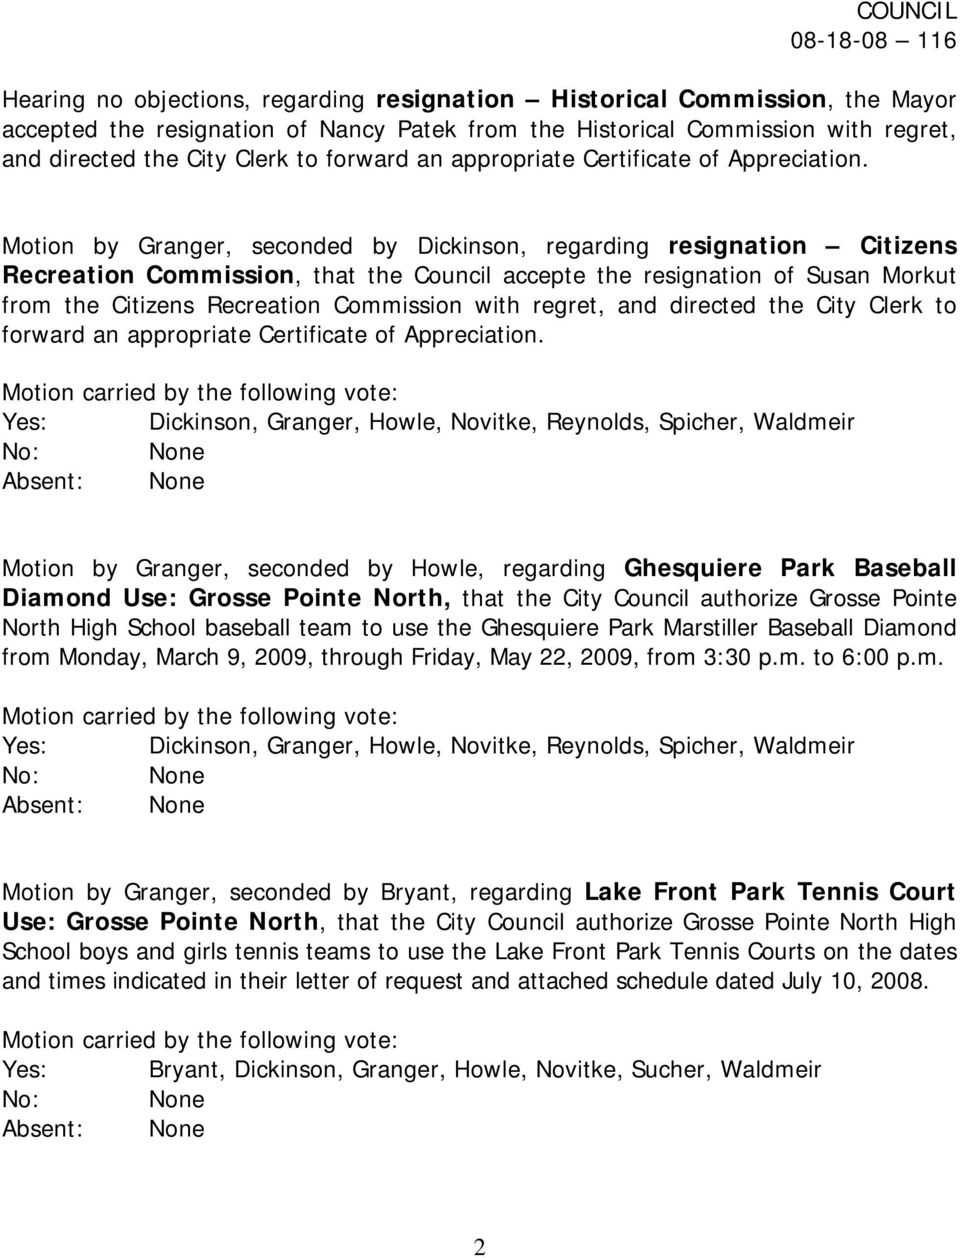 Motion by Granger, seconded by Dickinson, regarding resignation Citizens Recreation Commission, that the Council accepte the resignation of Susan Morkut from the Citizens Recreation Commission with